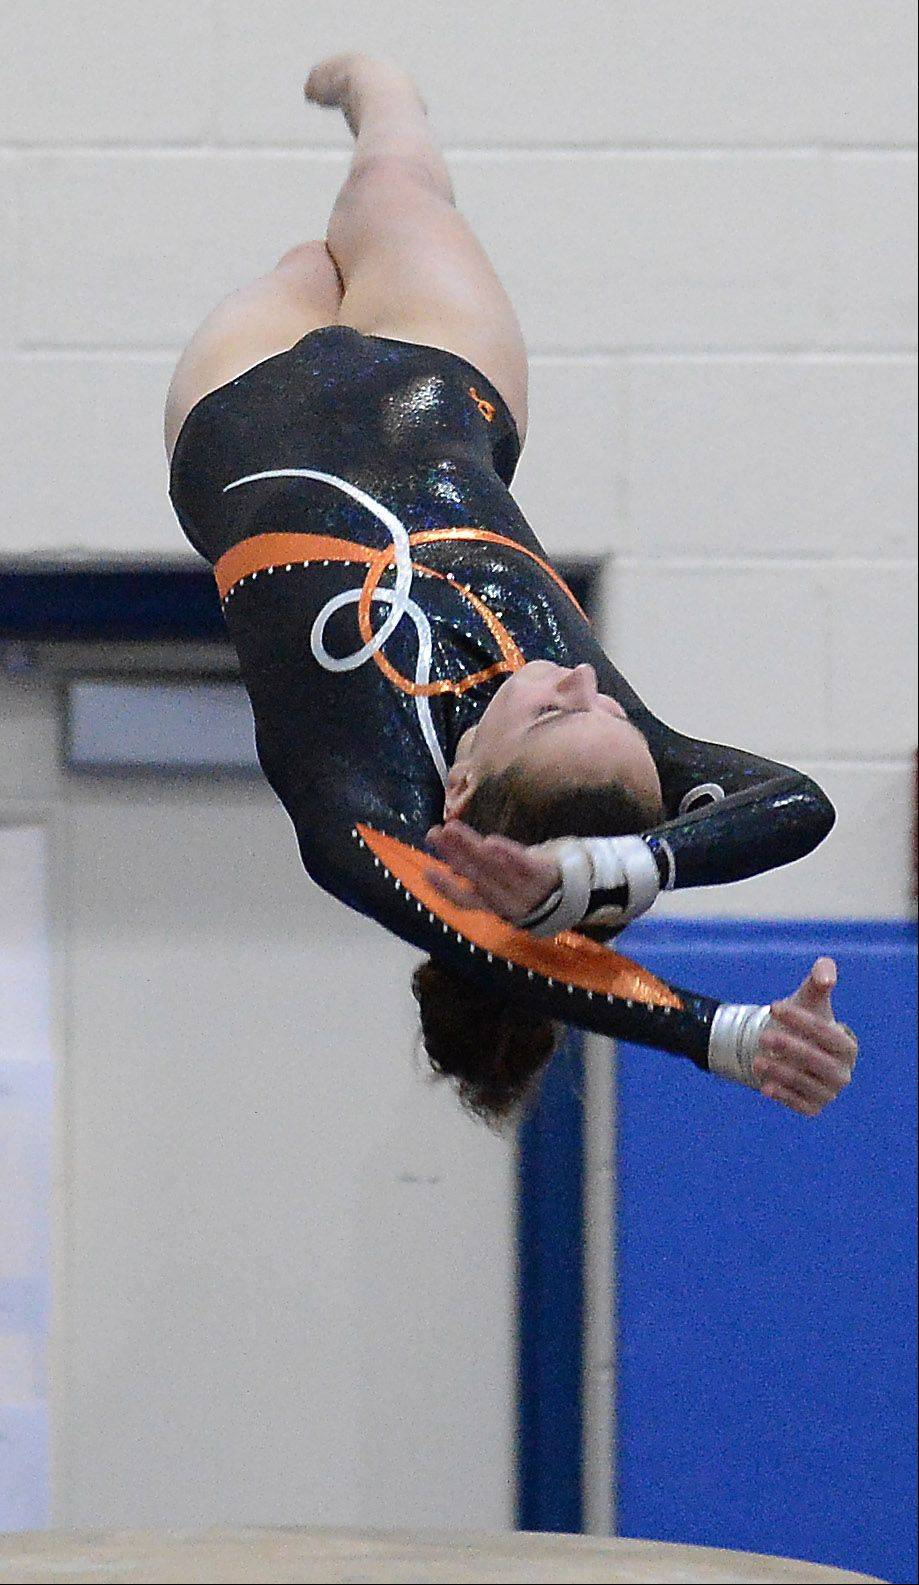 Hersey's Maggie Barton flys off the vault during Wednesday's gymnastics meet in Hoffman Estates.